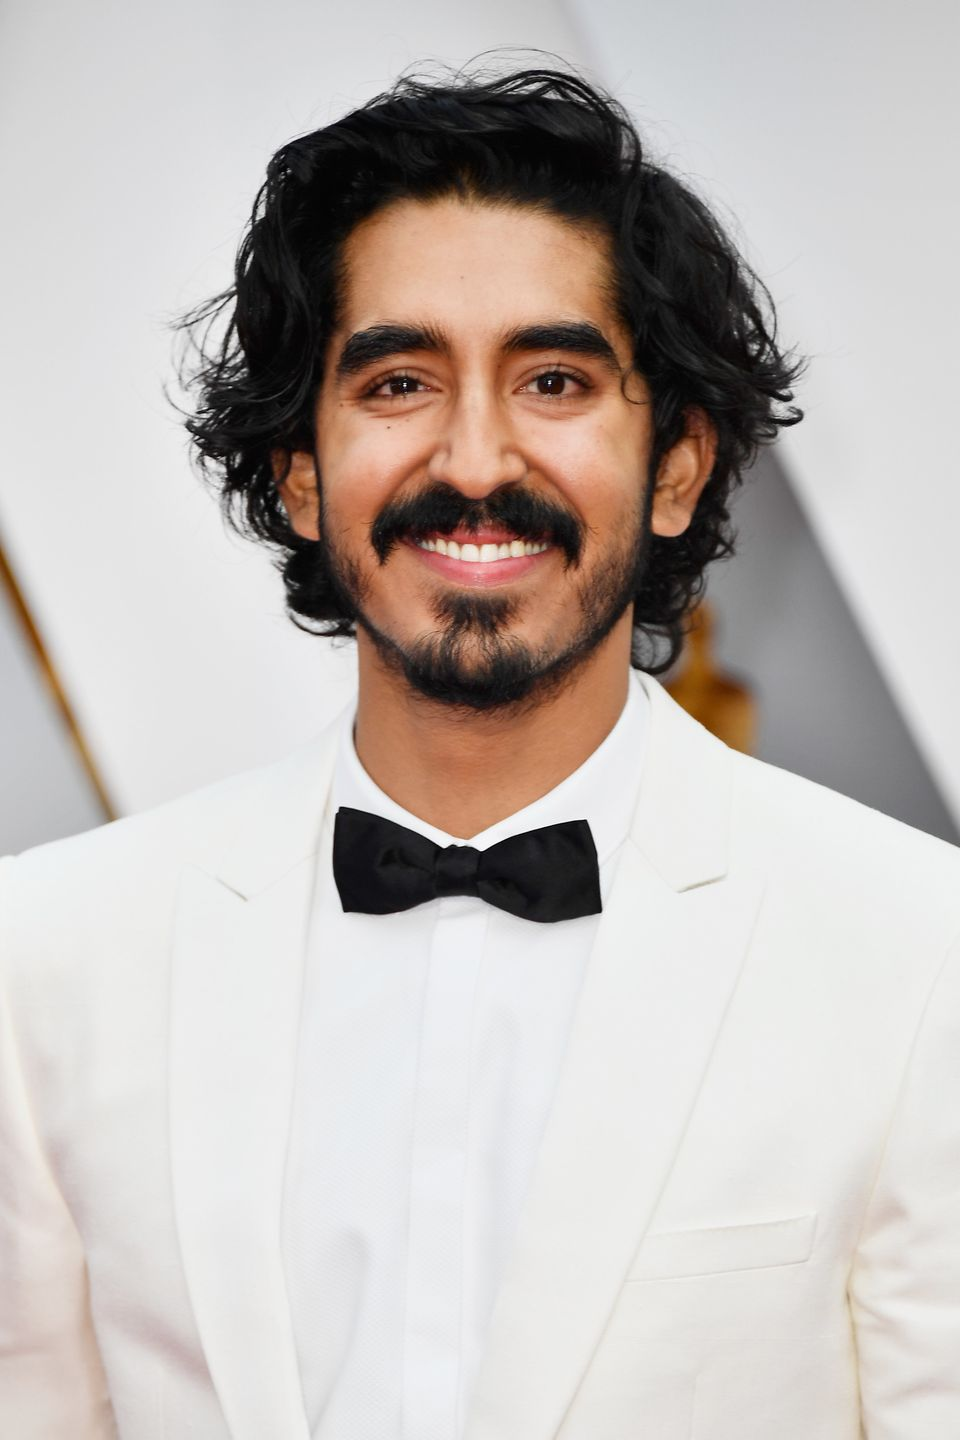 "<a href=""https://www.huffpost.com/entry/dev-patel-is-a-curly-haired-god_n_58b06244e4b0a8a9b781a634"">Dev Patel</a> is the Inte"